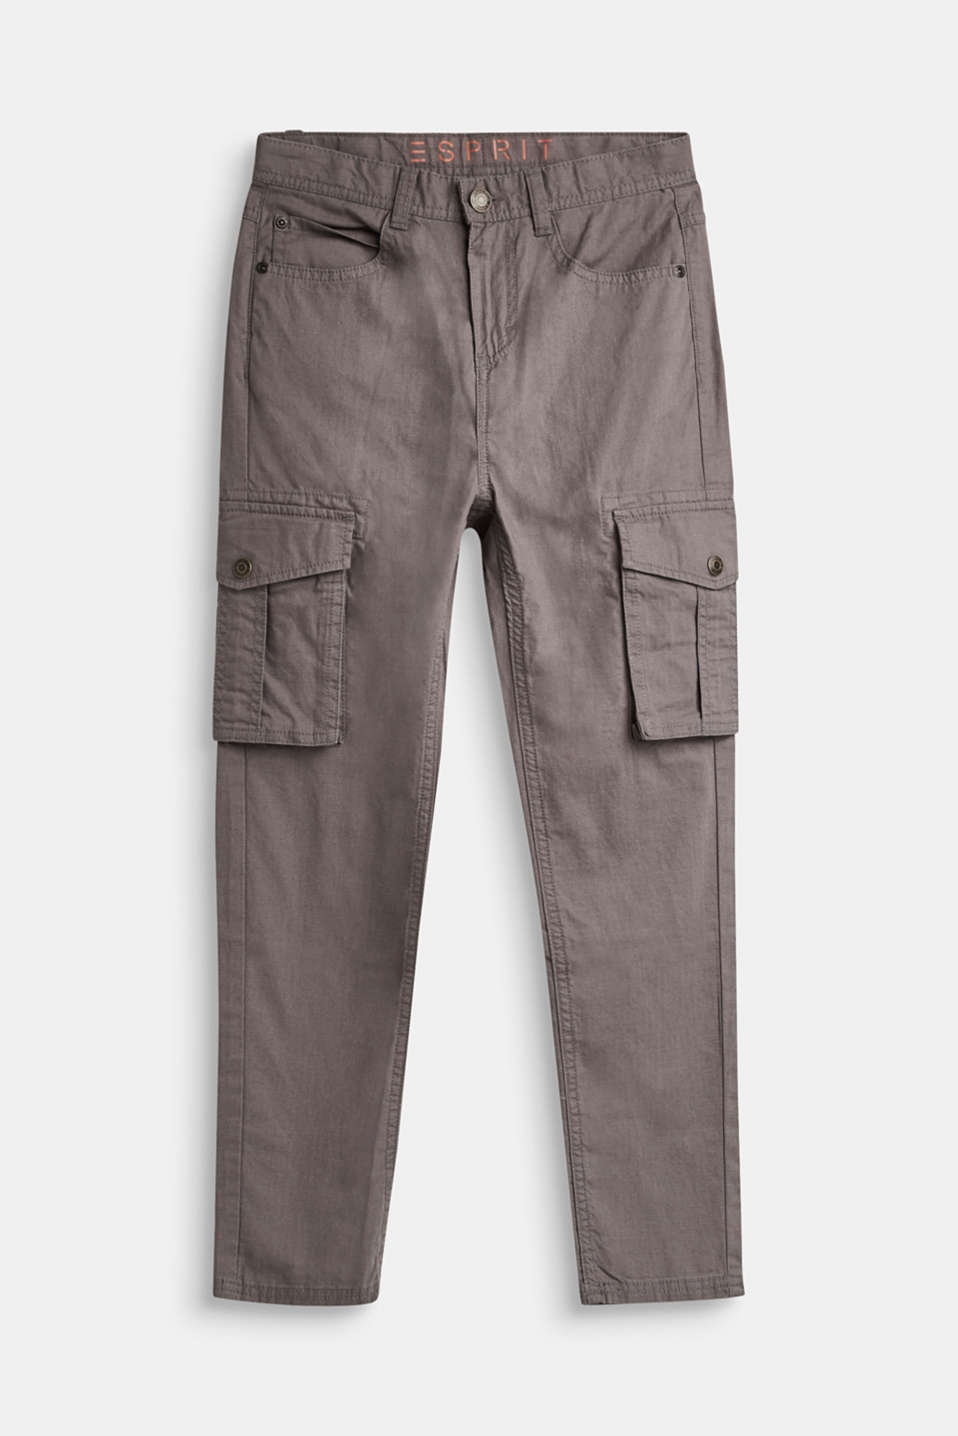 Esprit - Cargo style trousers in 100% cotton